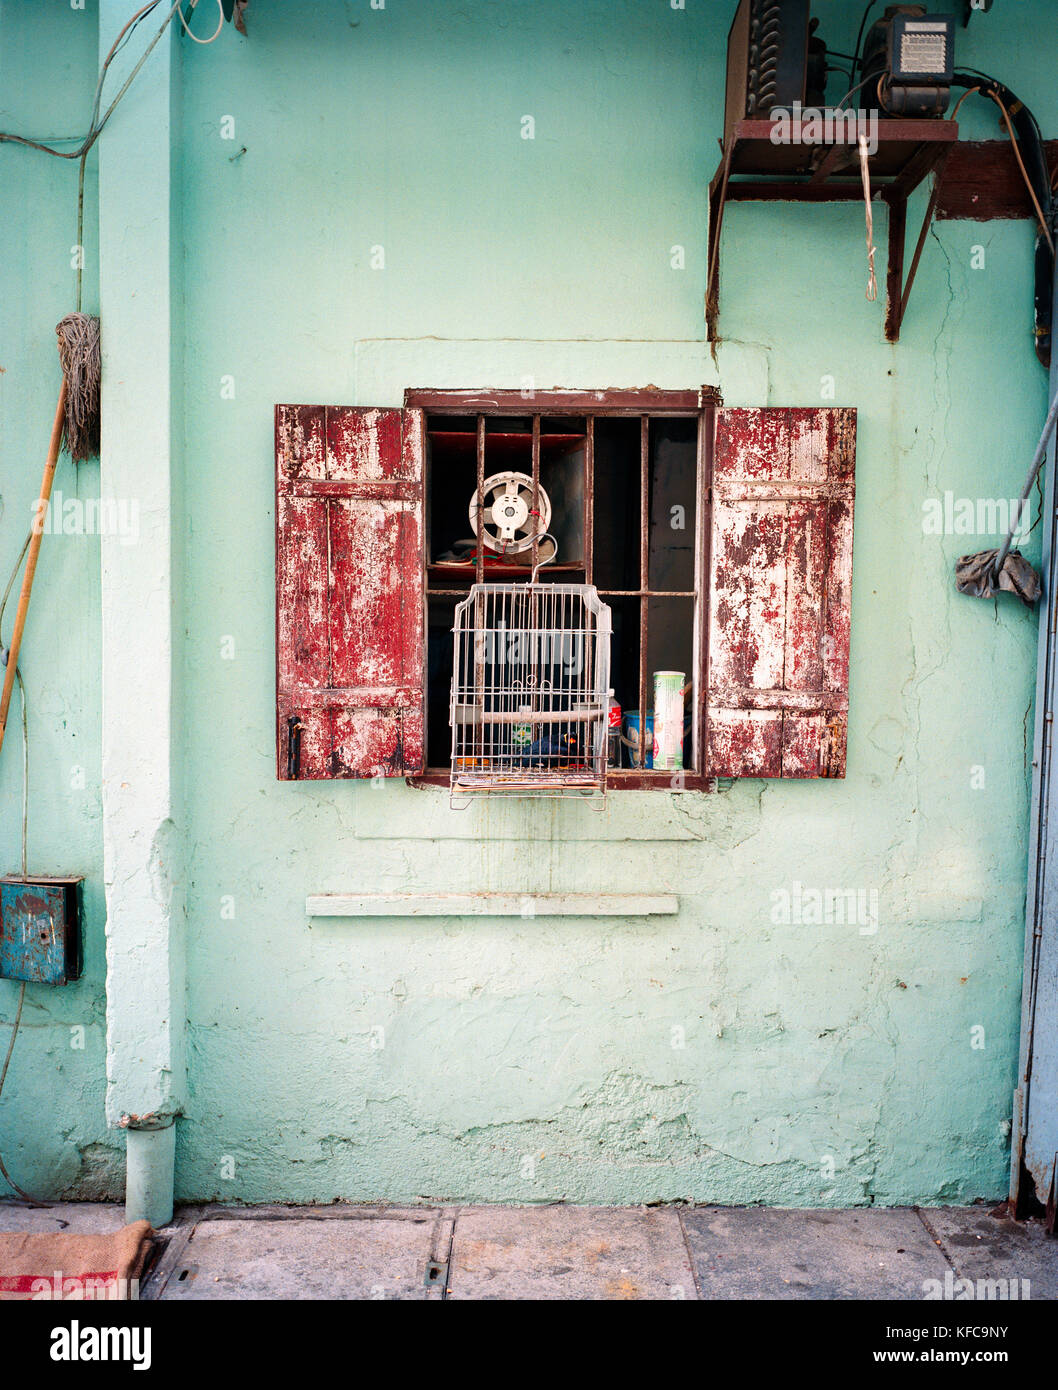 CHINA, Macau, Taipa, Asia, Birdcage hanging in front of house window - Stock Image